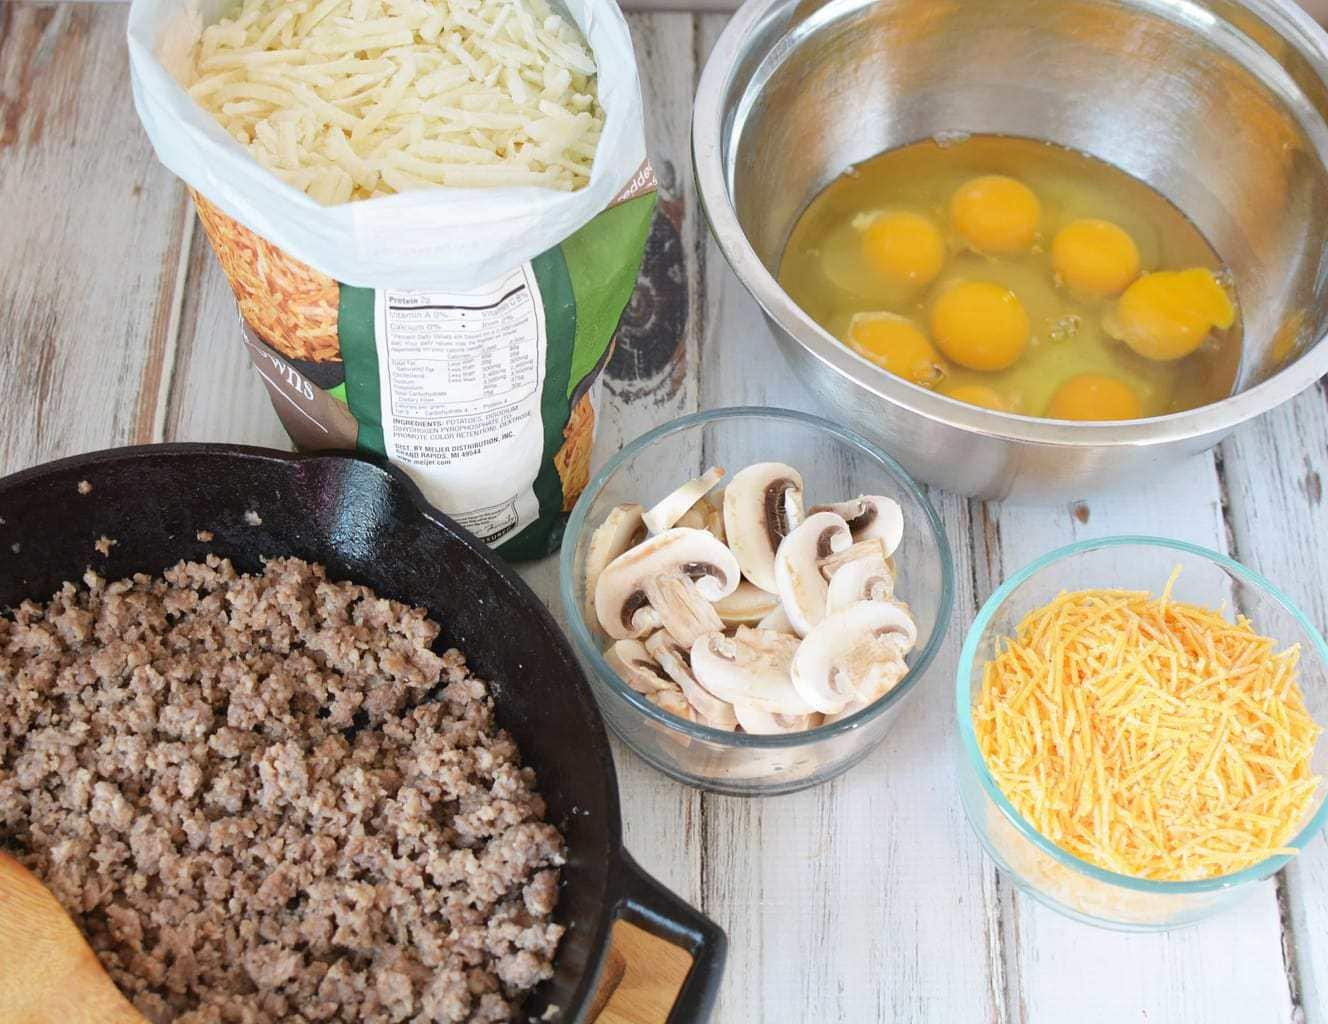 ingredients to make hash brown casserole